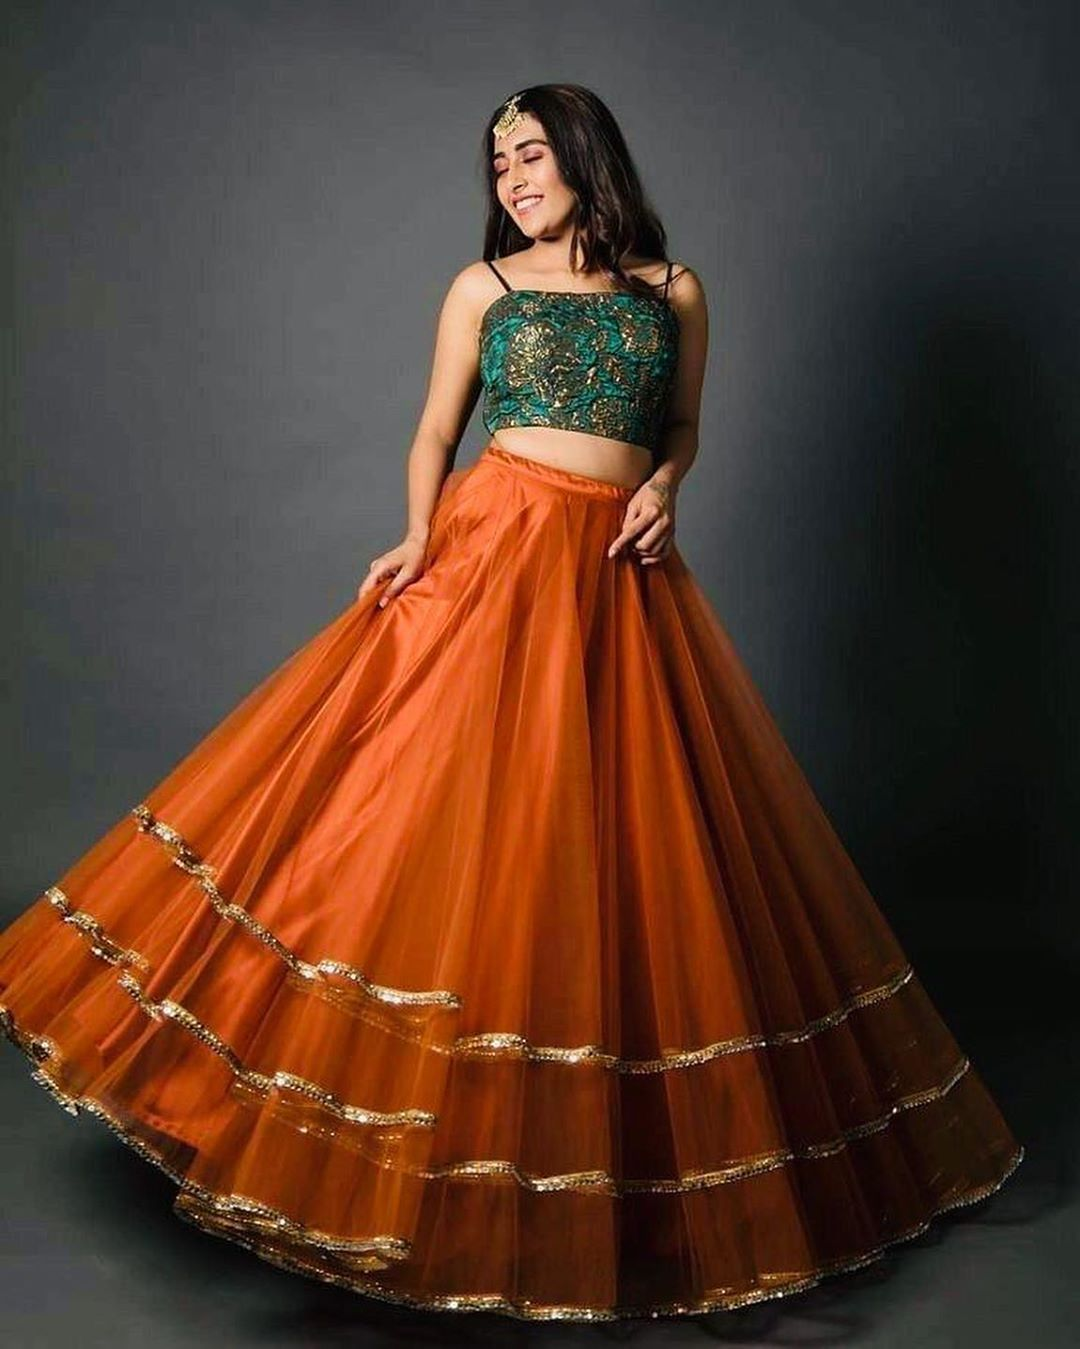 20+ Indian Bridesmaids Outfits Ideas 2020 | Indian Bridesmaid/Wedding Guest Outfit Inspirations